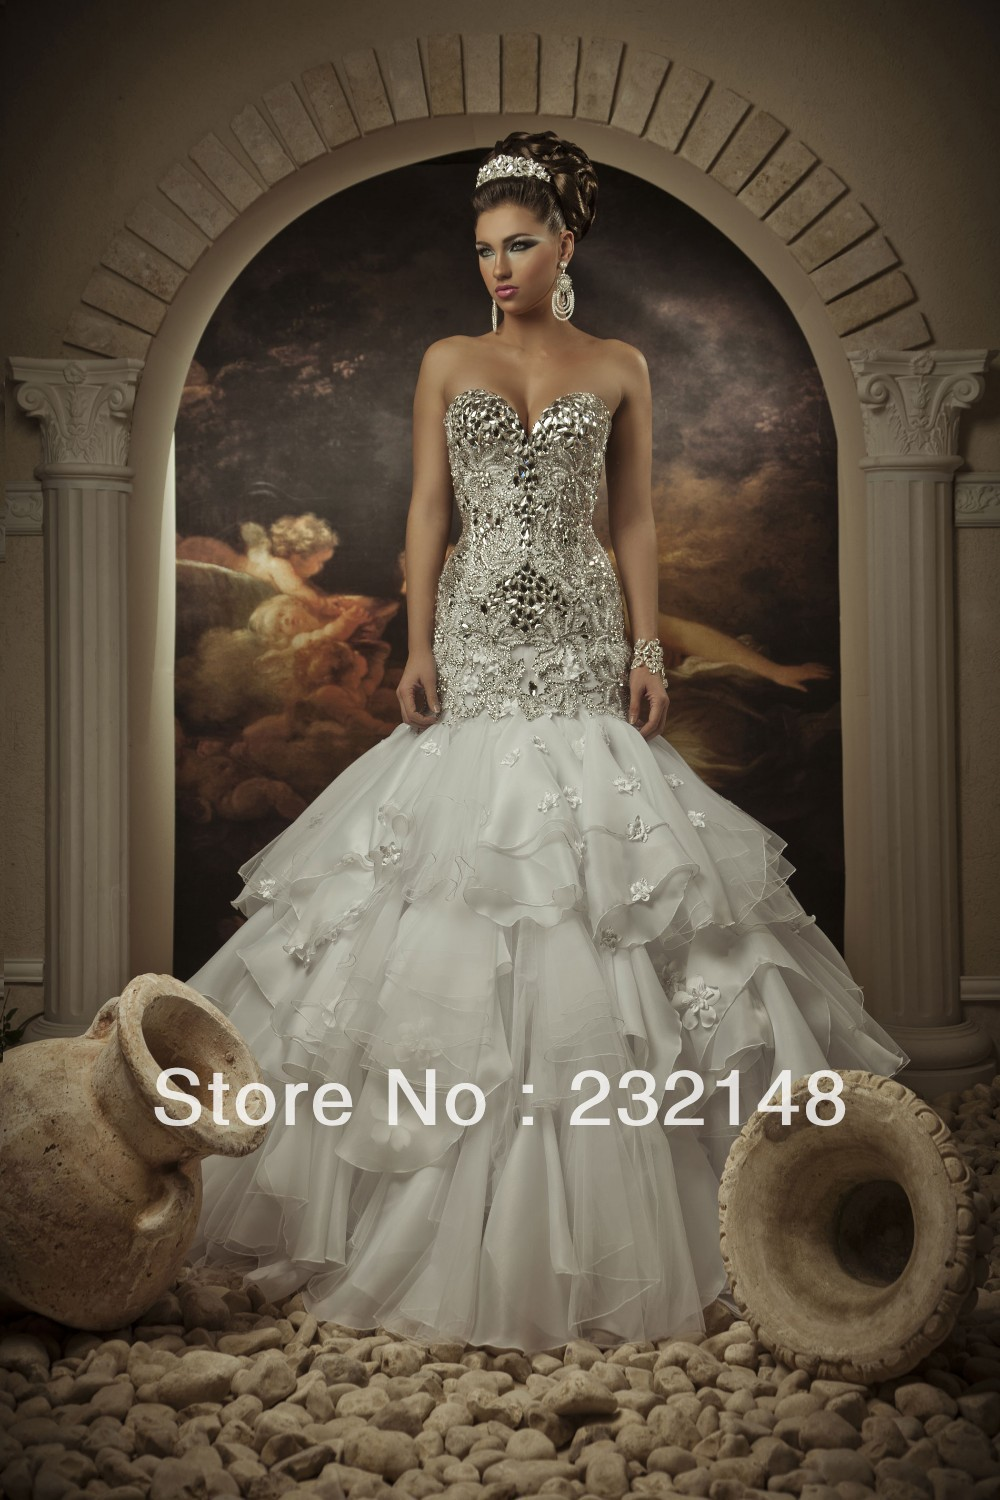 princess style wedding dresses with bling bling wedding dresses Princess Ball Gown Wedding Dress With Bling Naf Dresses